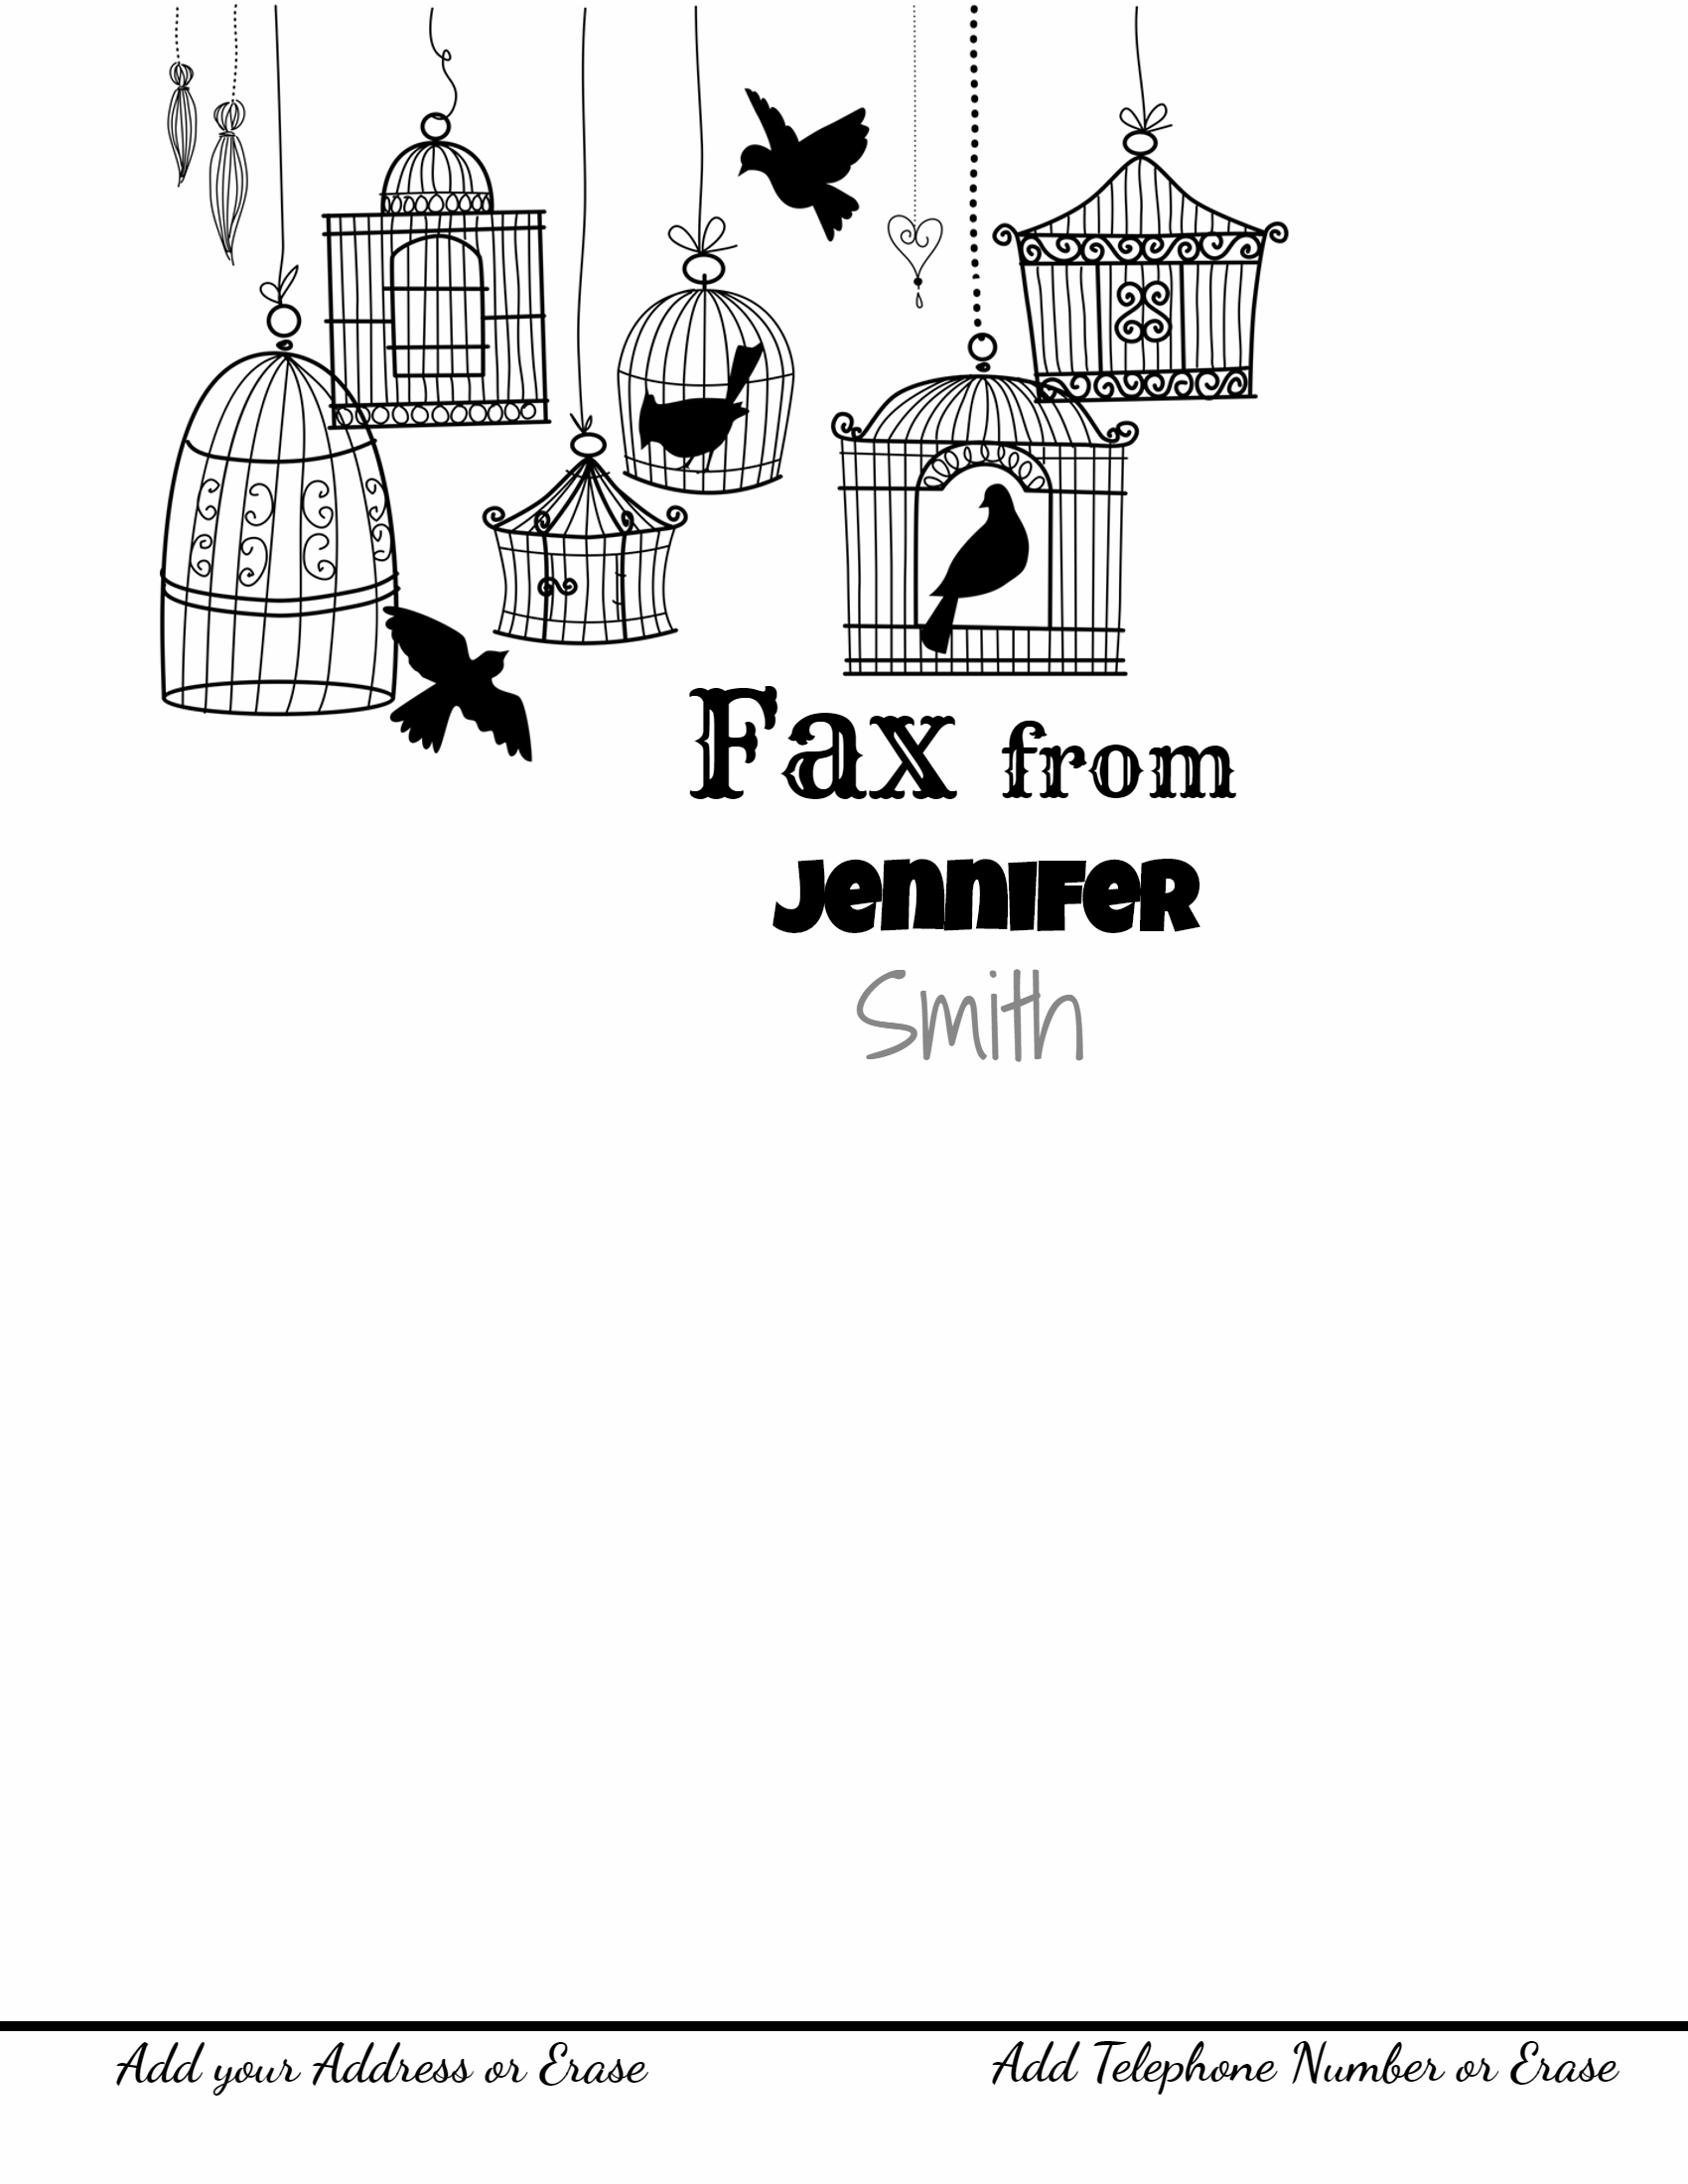 This Is Just A Fax Cover Letter Sample And You Can Make Any Changes That  You Want To It. You Can Move The Text Around, Make It Bigger Or Smaller, ...